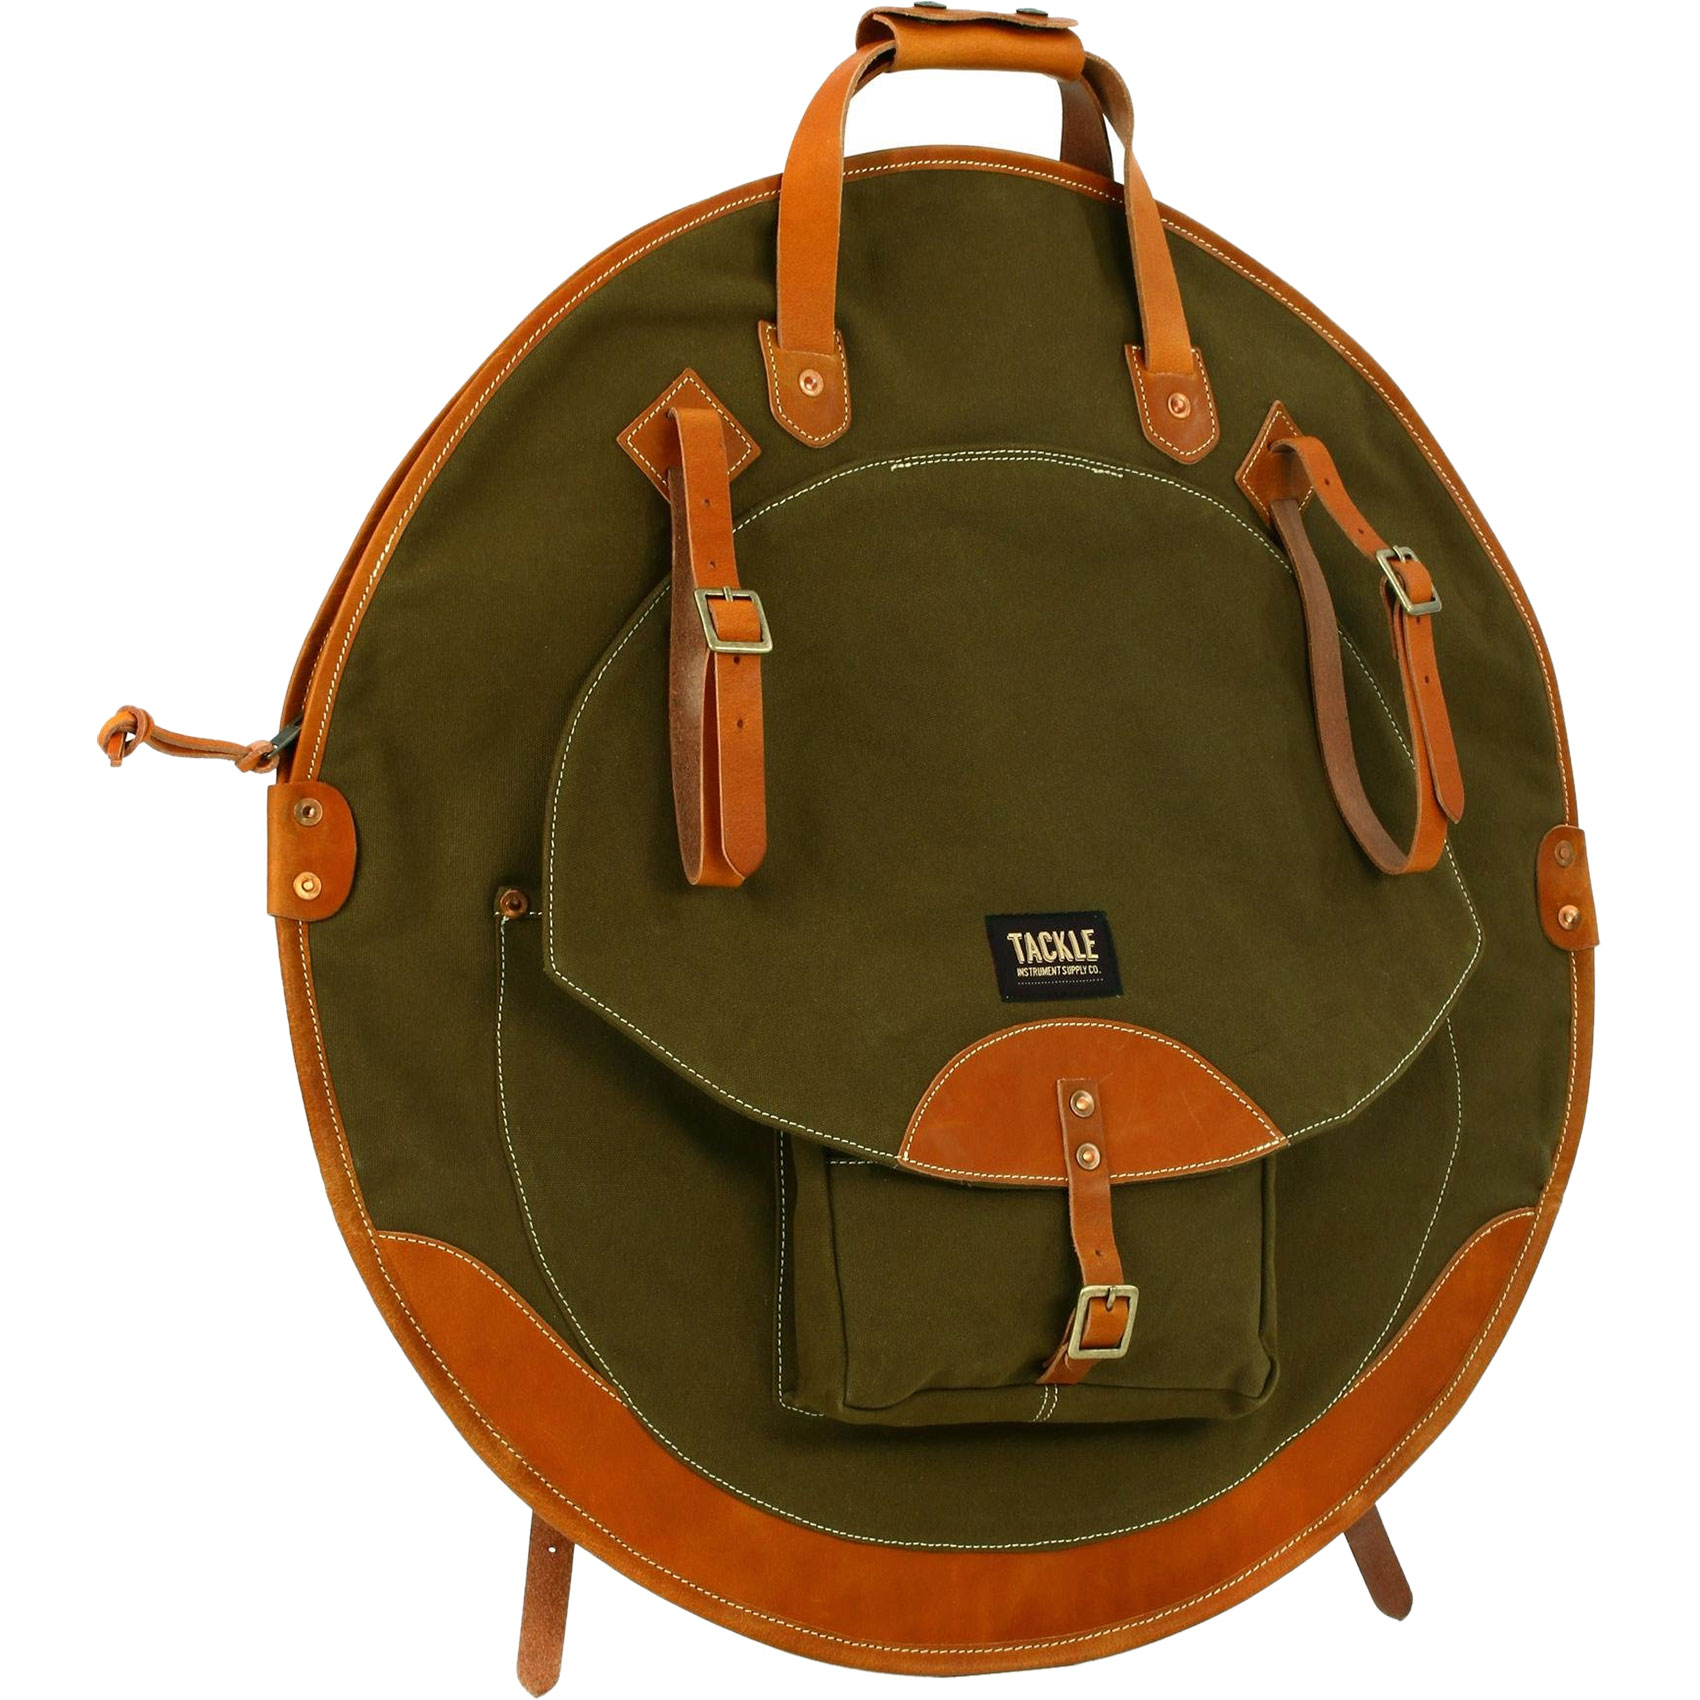 "Tackle Instrument Supply Co. 24"" Forest Green Canvas/Tan Leather Cymbal Bag"